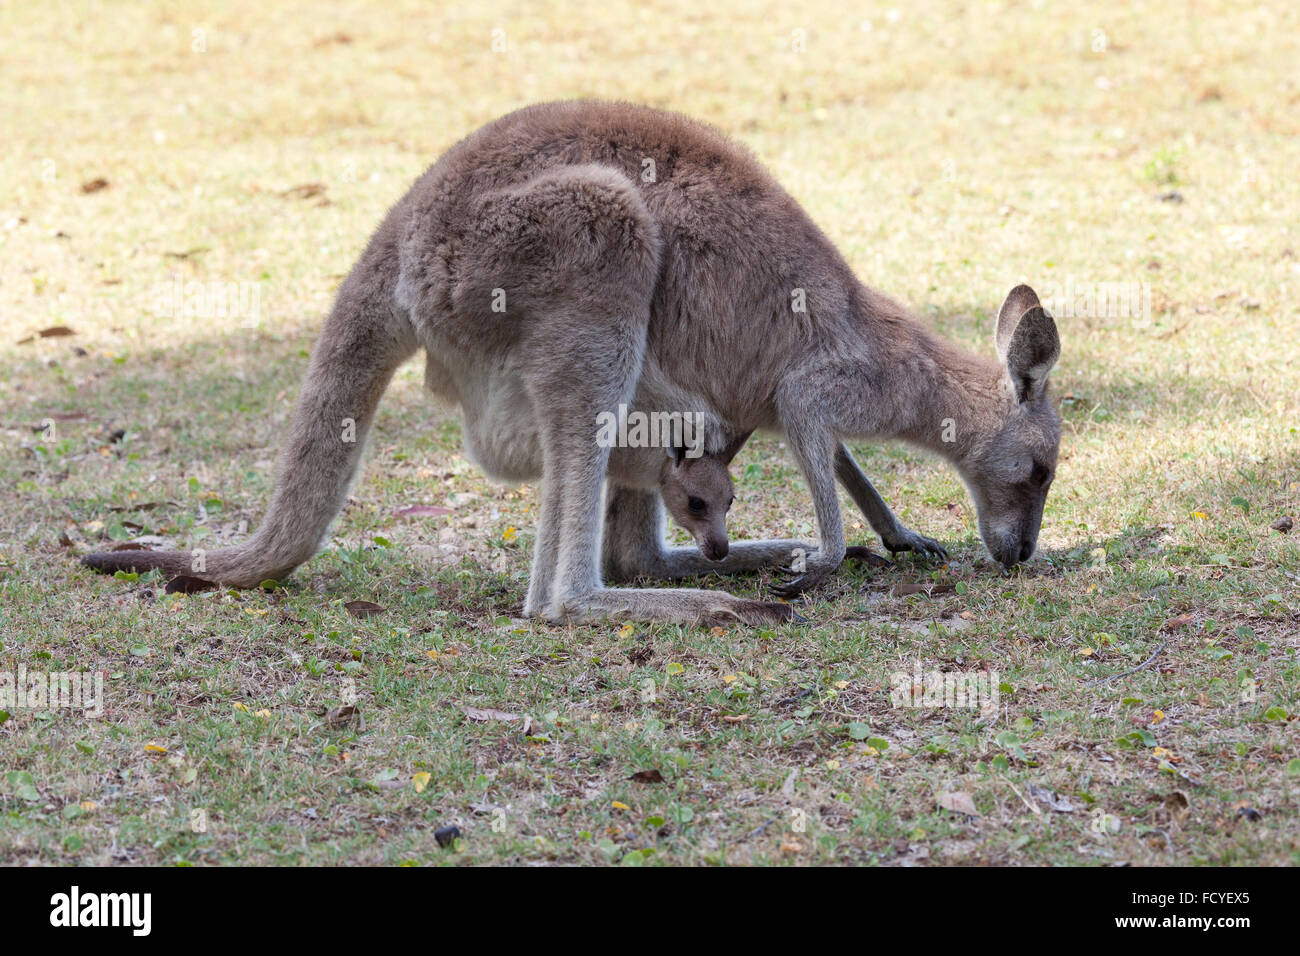 Red Kangaroo mother and joey eating together in Australia in Queensland, Australia - Stock Image